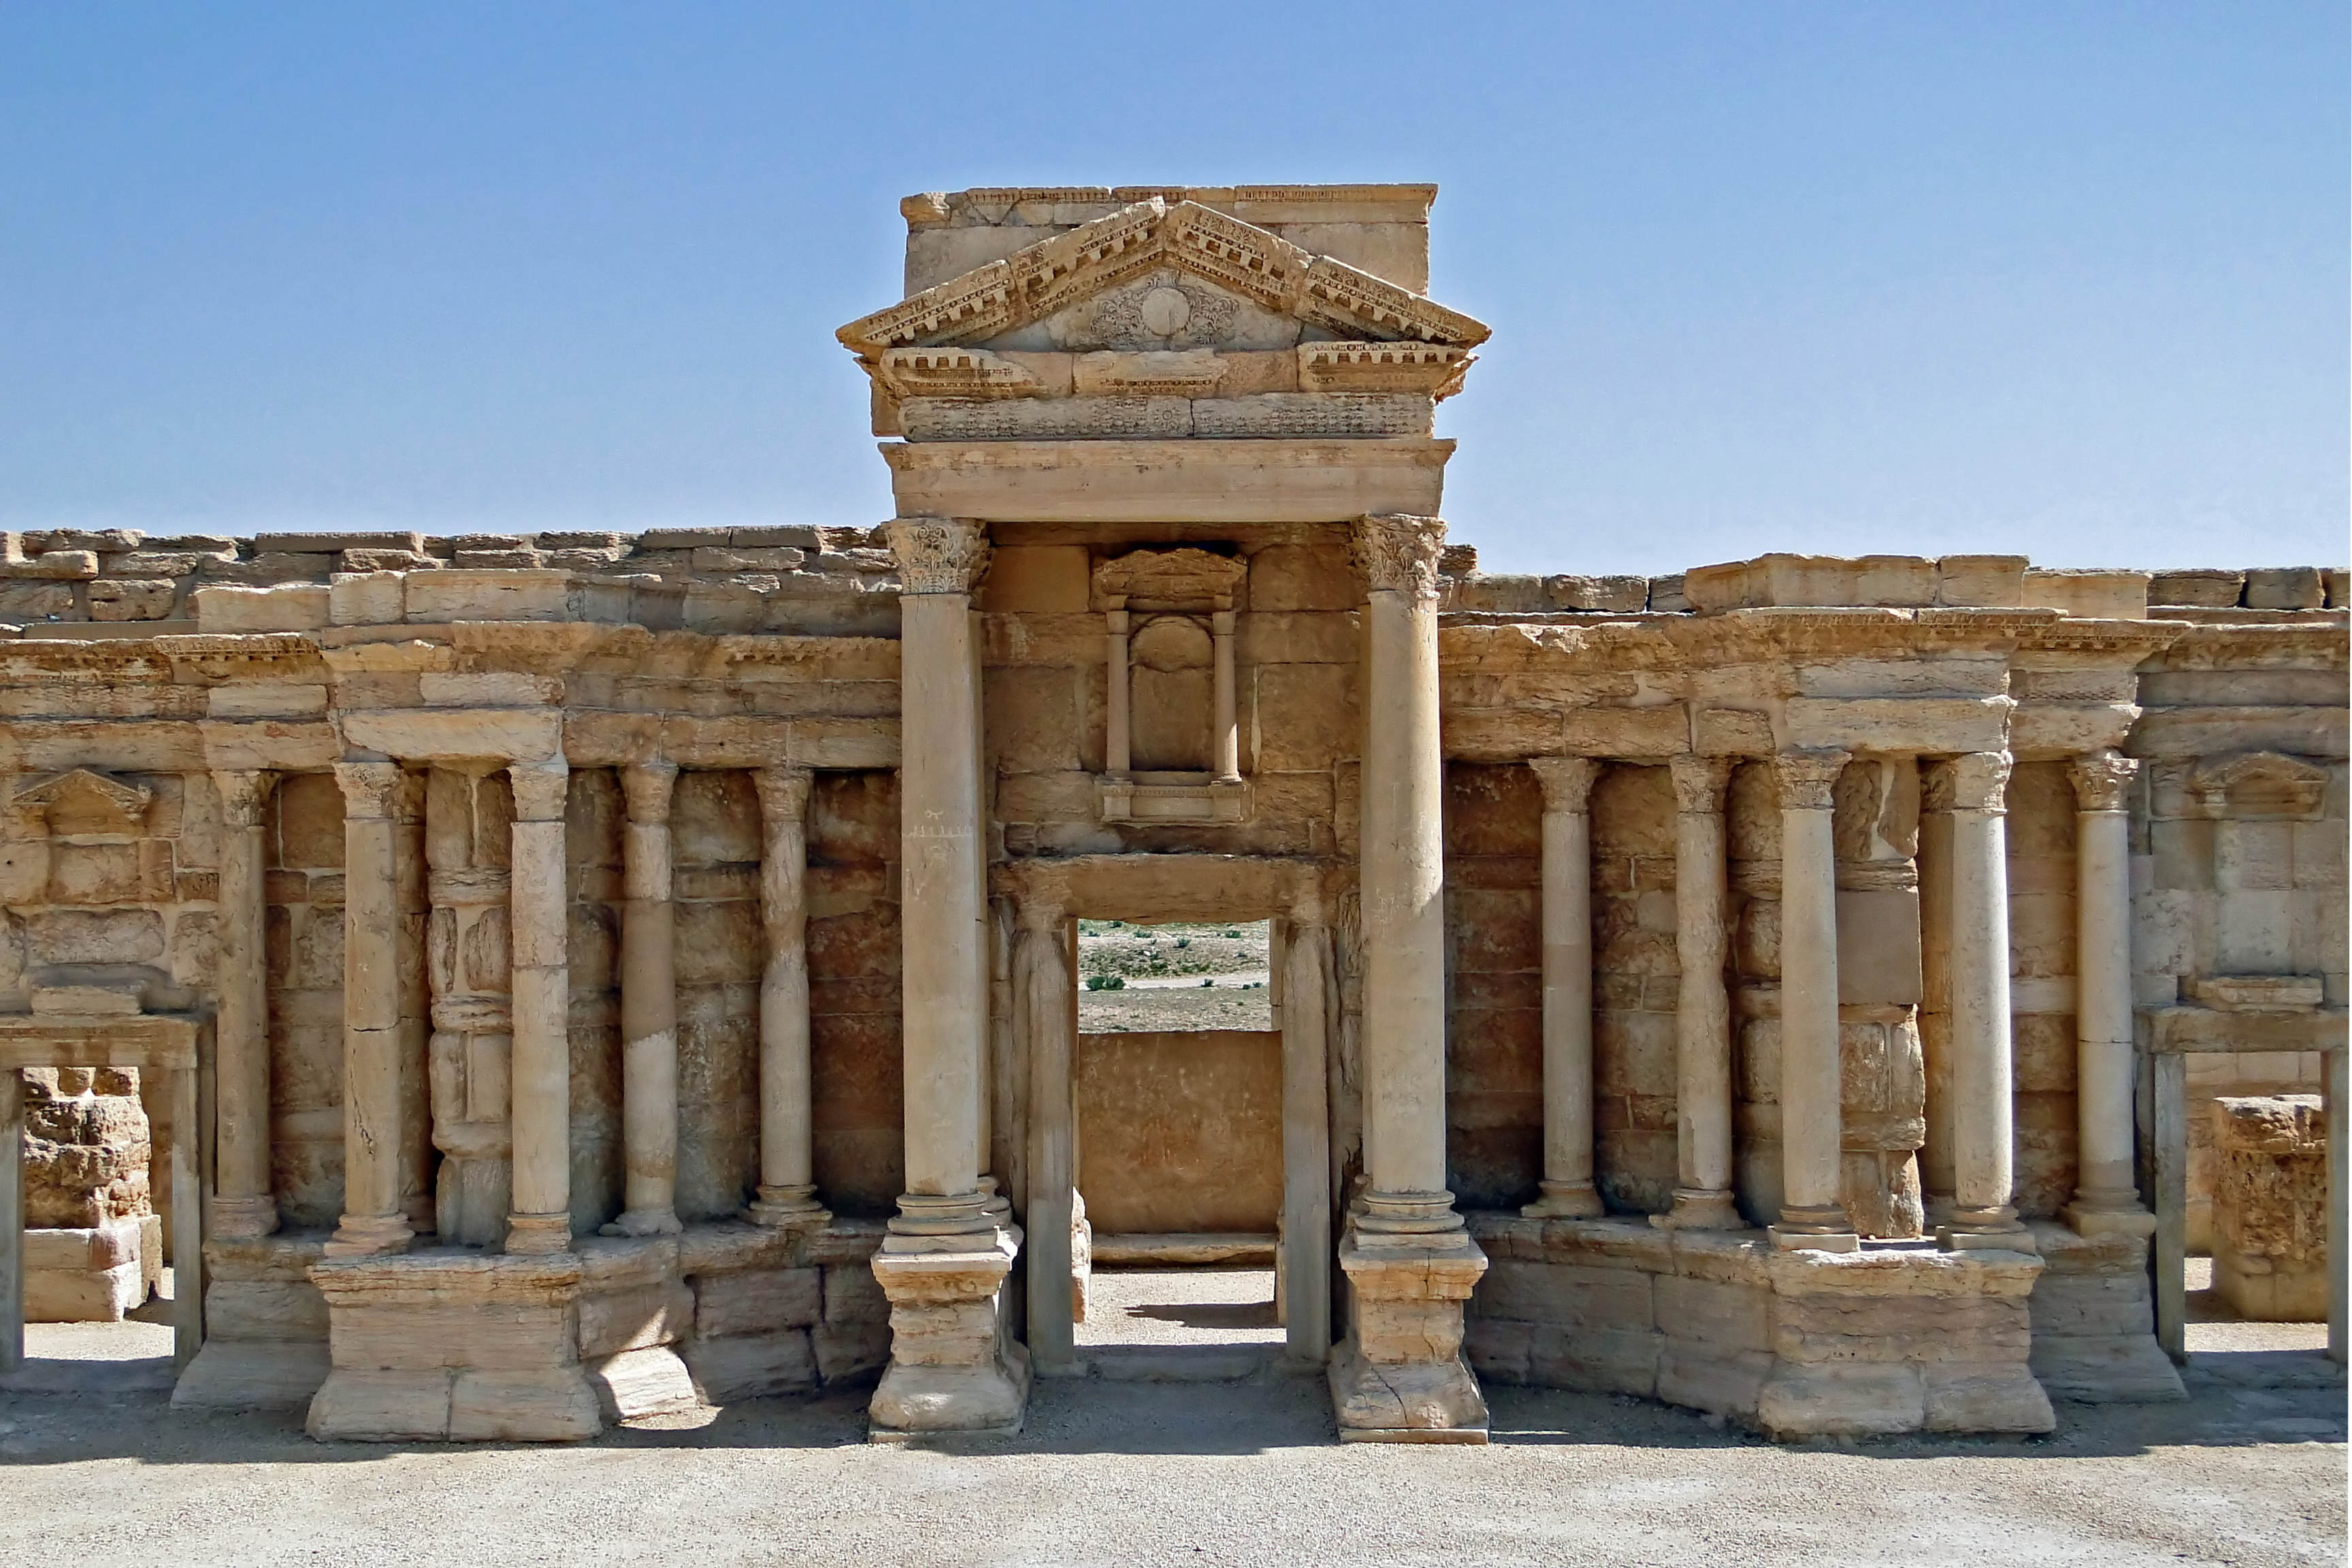 Shocking Photos Show How An Ancient City Was Destroyed By ISIS Roman theatre of Palmyra 05